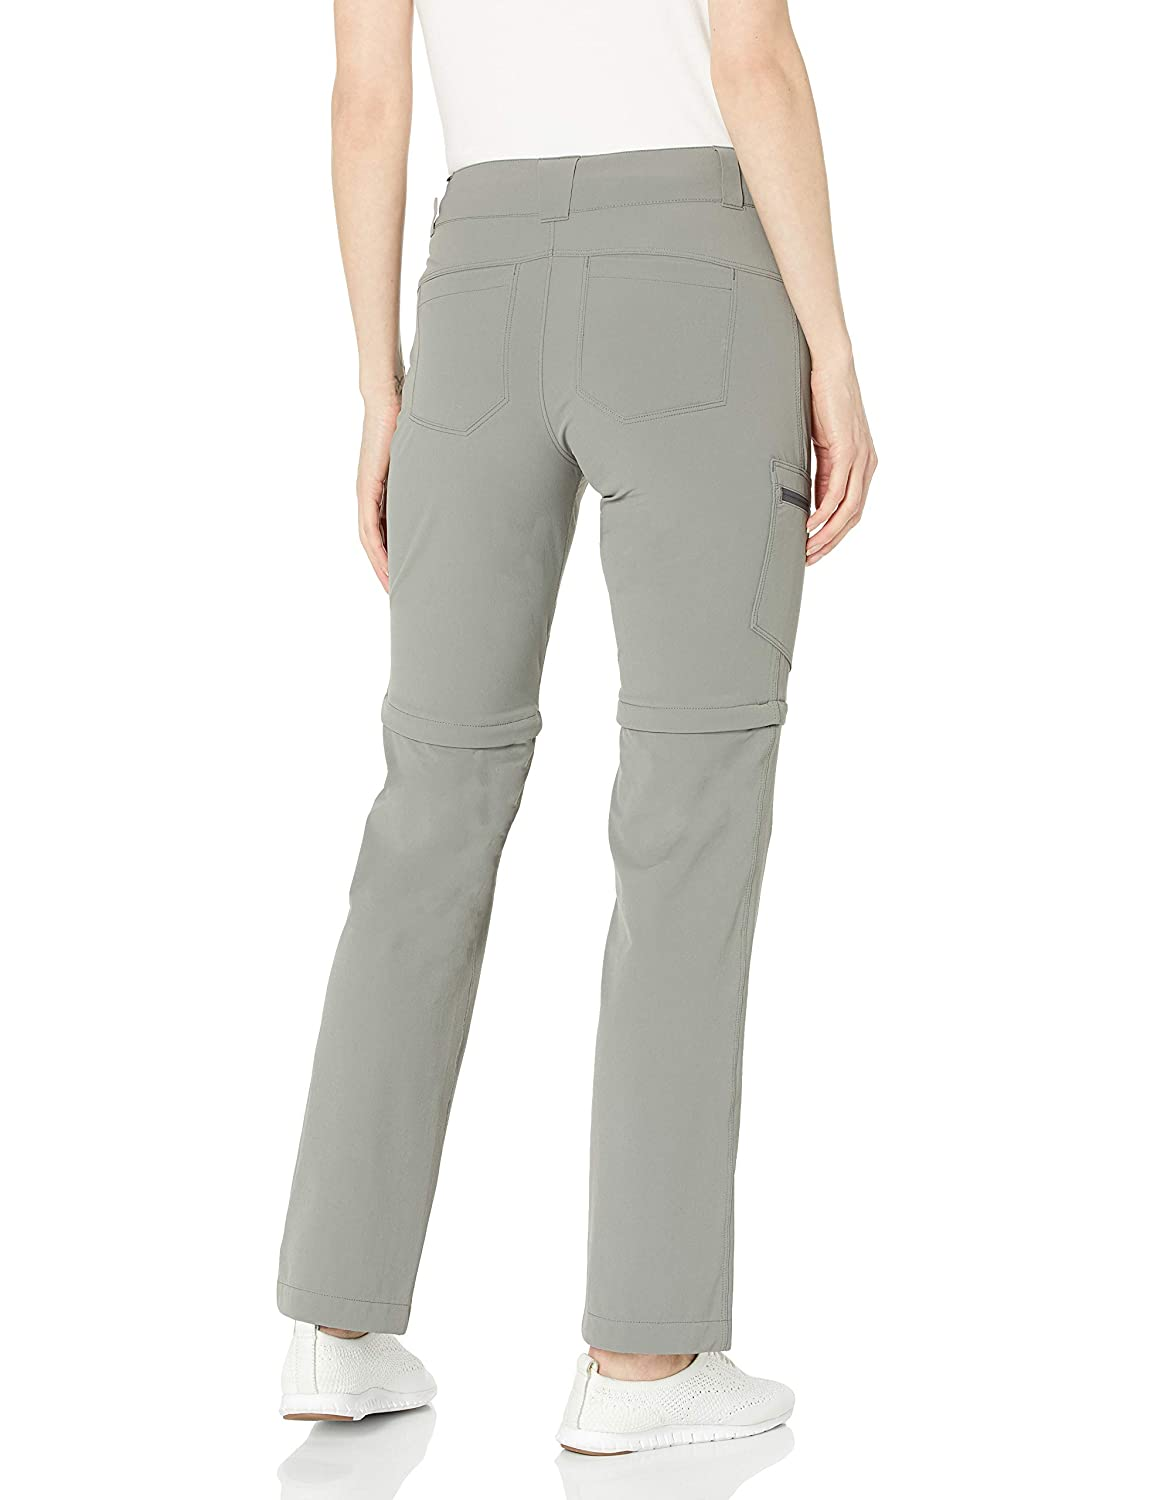 Outdoor Research Womens Ws Ferrosi Convertible Pants